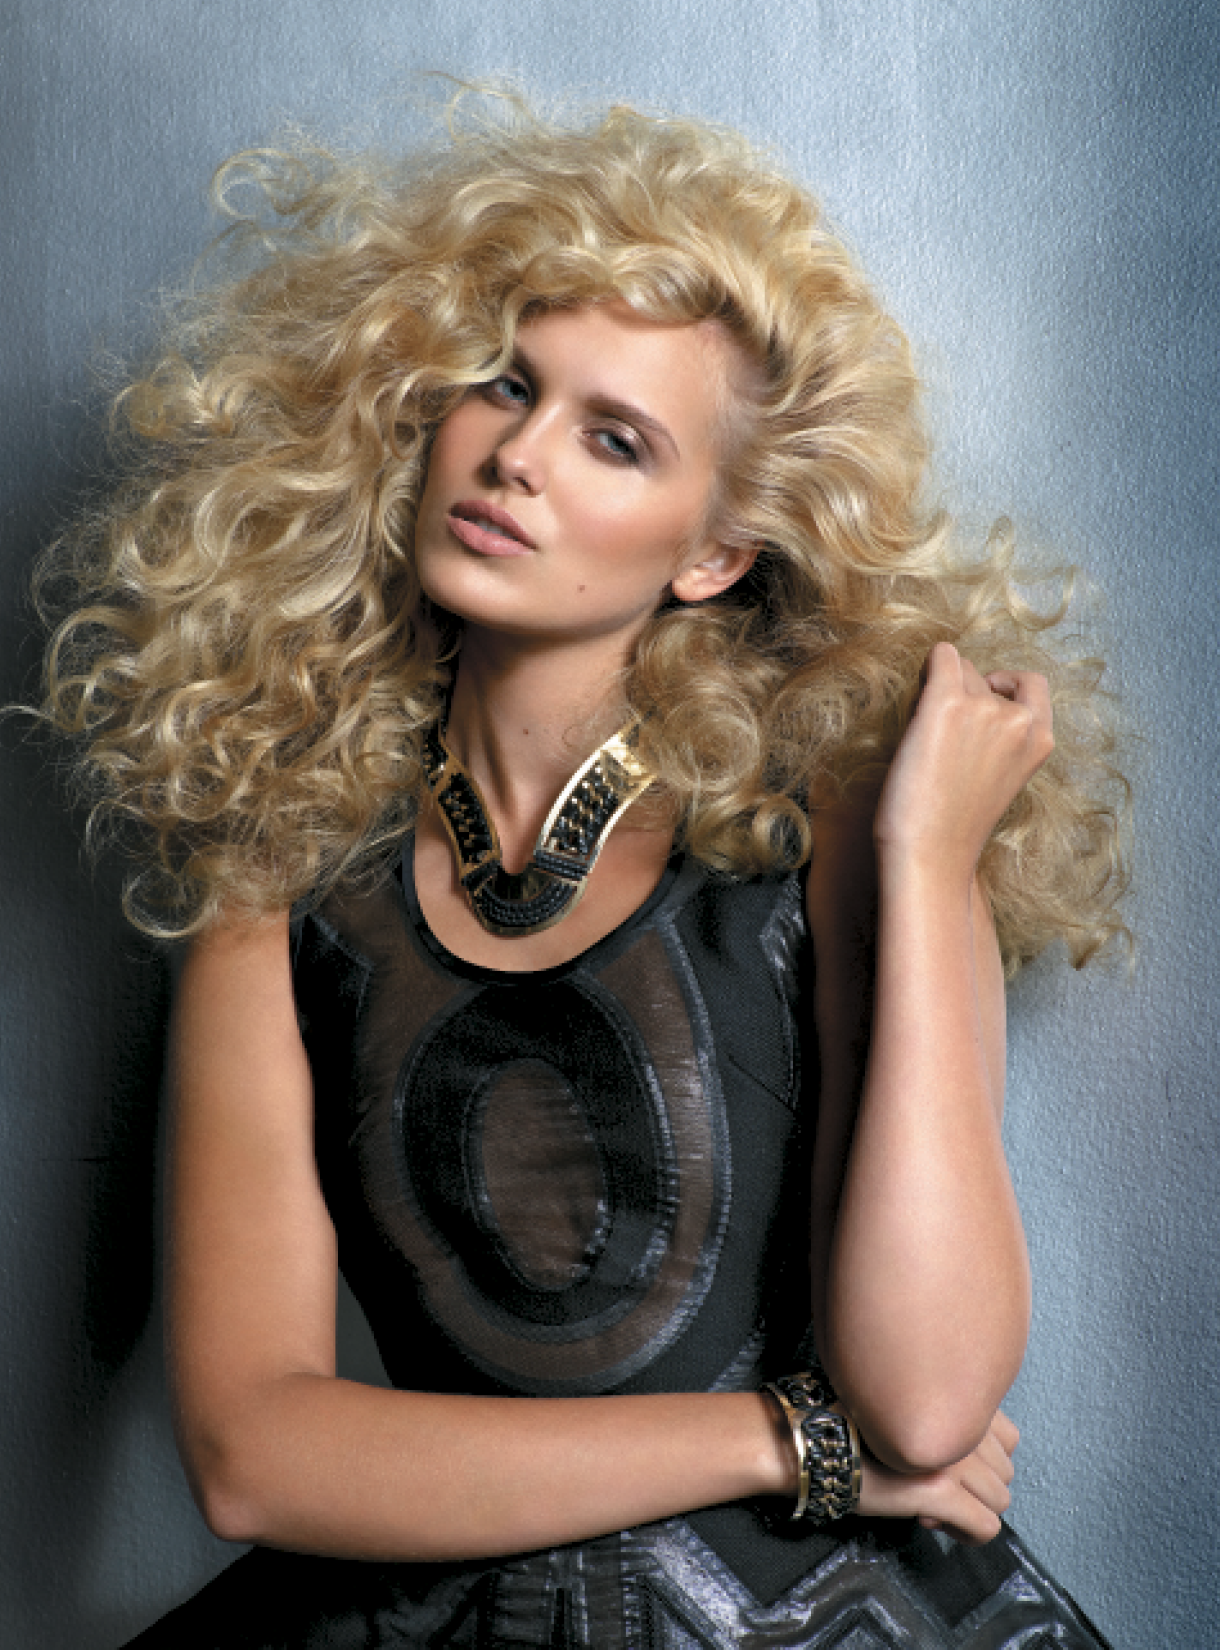 After applying Foaming Volumizer all over and rough-drying hair upside down, Giannandrea used a ½-inch curling iron and Control Hairspray to set small sections. Once they cooled, he used a wide-tooth comb and Activating Curl Cream to amplify volume and create bouncy waves and curls. Jewelry: Pluma; Dress: Cristiano Burani